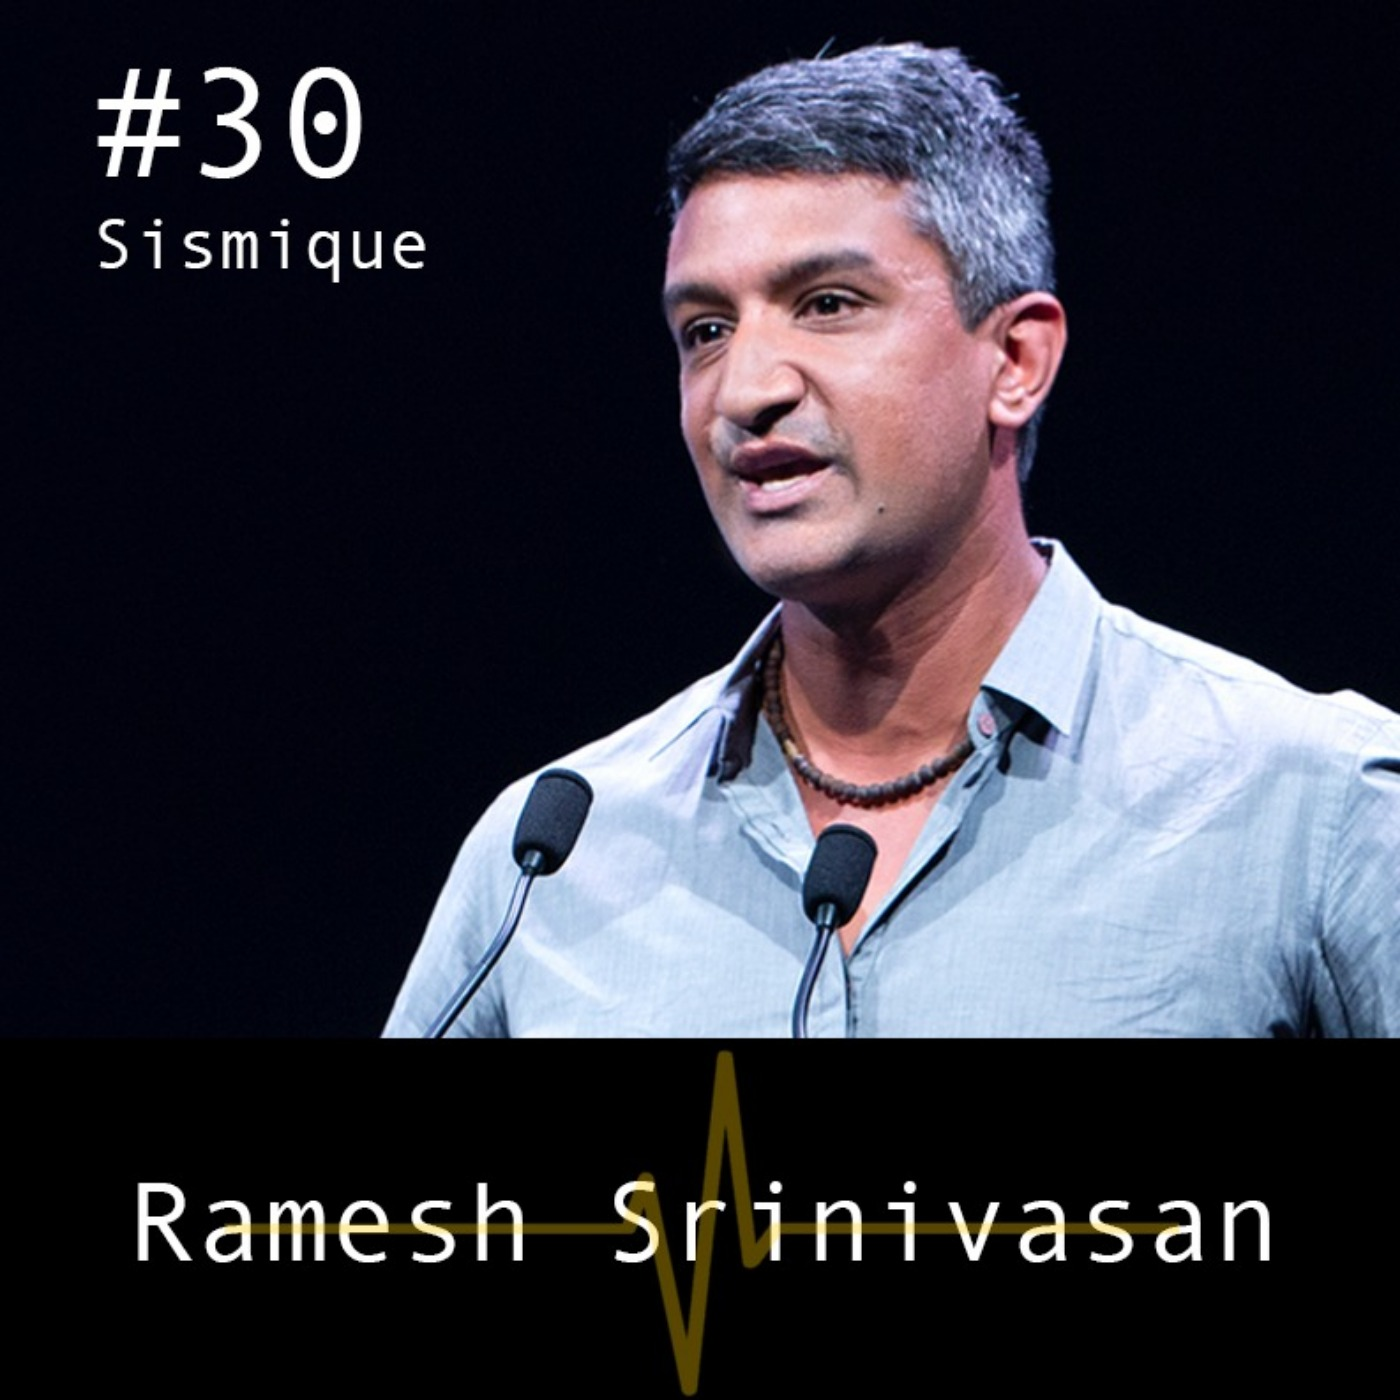 Rethinking how technology shapes the world - Ramesh Srinivasan